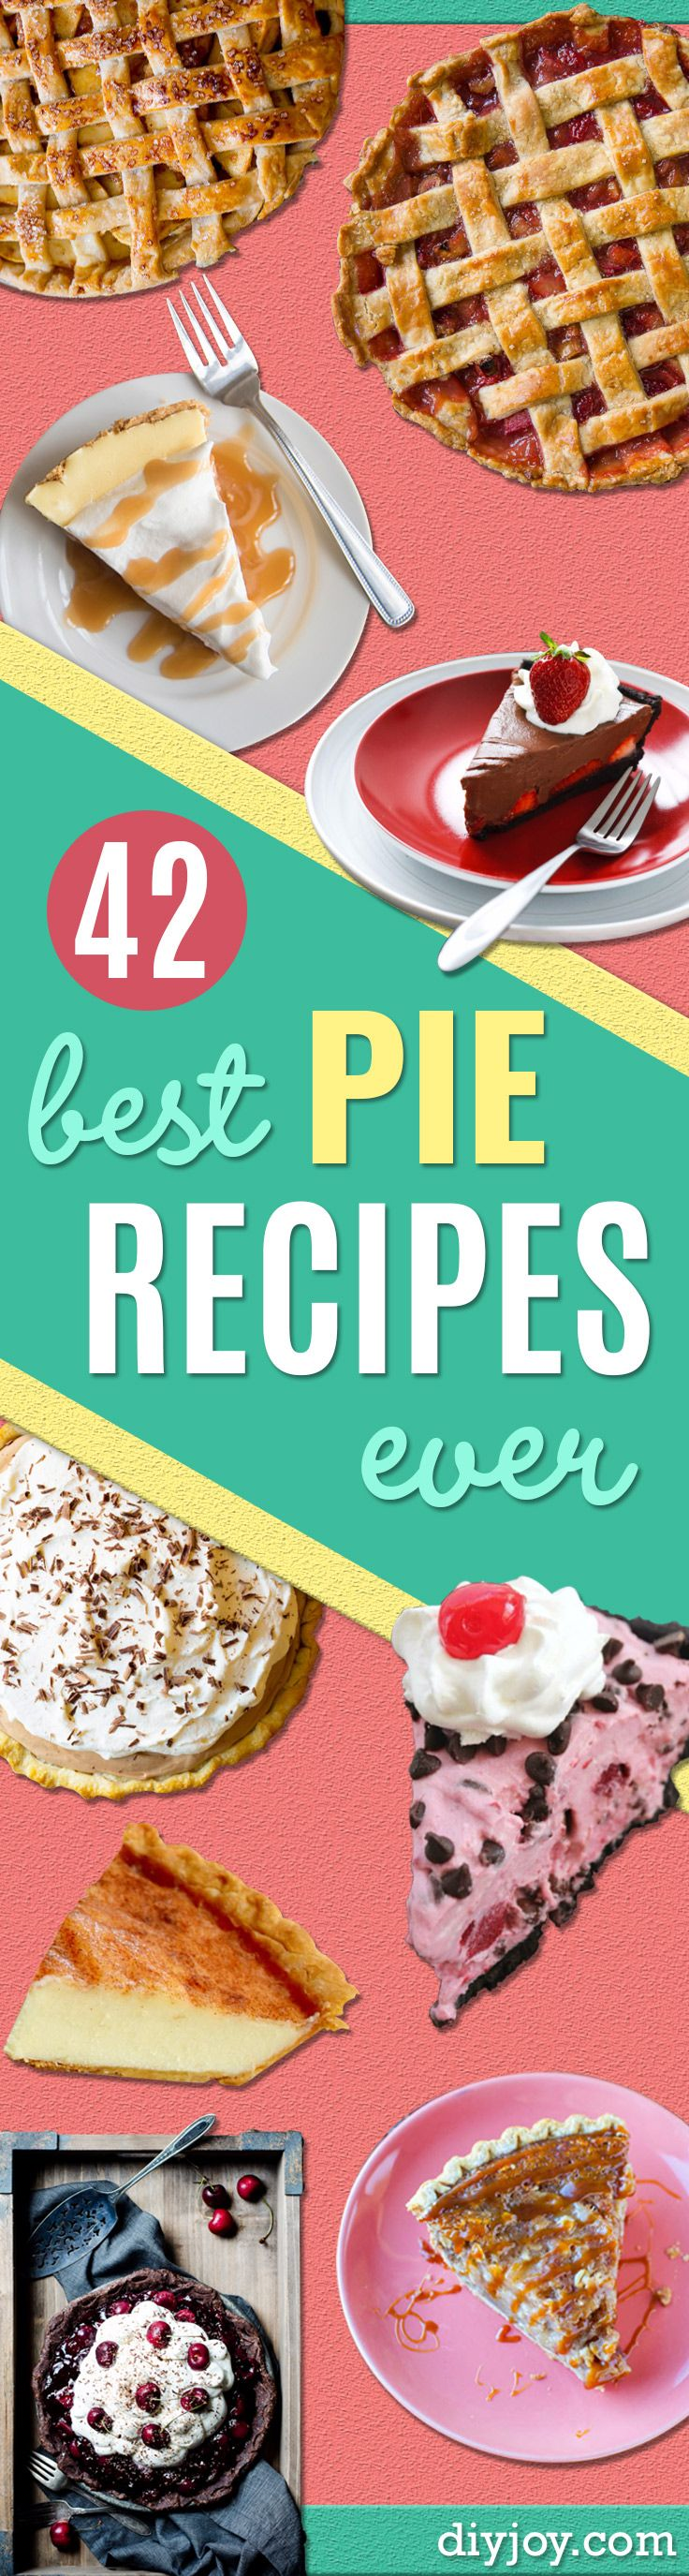 Best Pie Recipes - Easy Pie Recipes From Scratch for Pecan, Apple, Banana, Pumpkin, Fruit, Peach and Chocolate Pies. Yummy Graham Cracker Crusts and Homemade Meringue - Thanksgiving and Christmas Pies and Mason Jar Pie Recipes http://diyjoy.com/best-pie-recipes